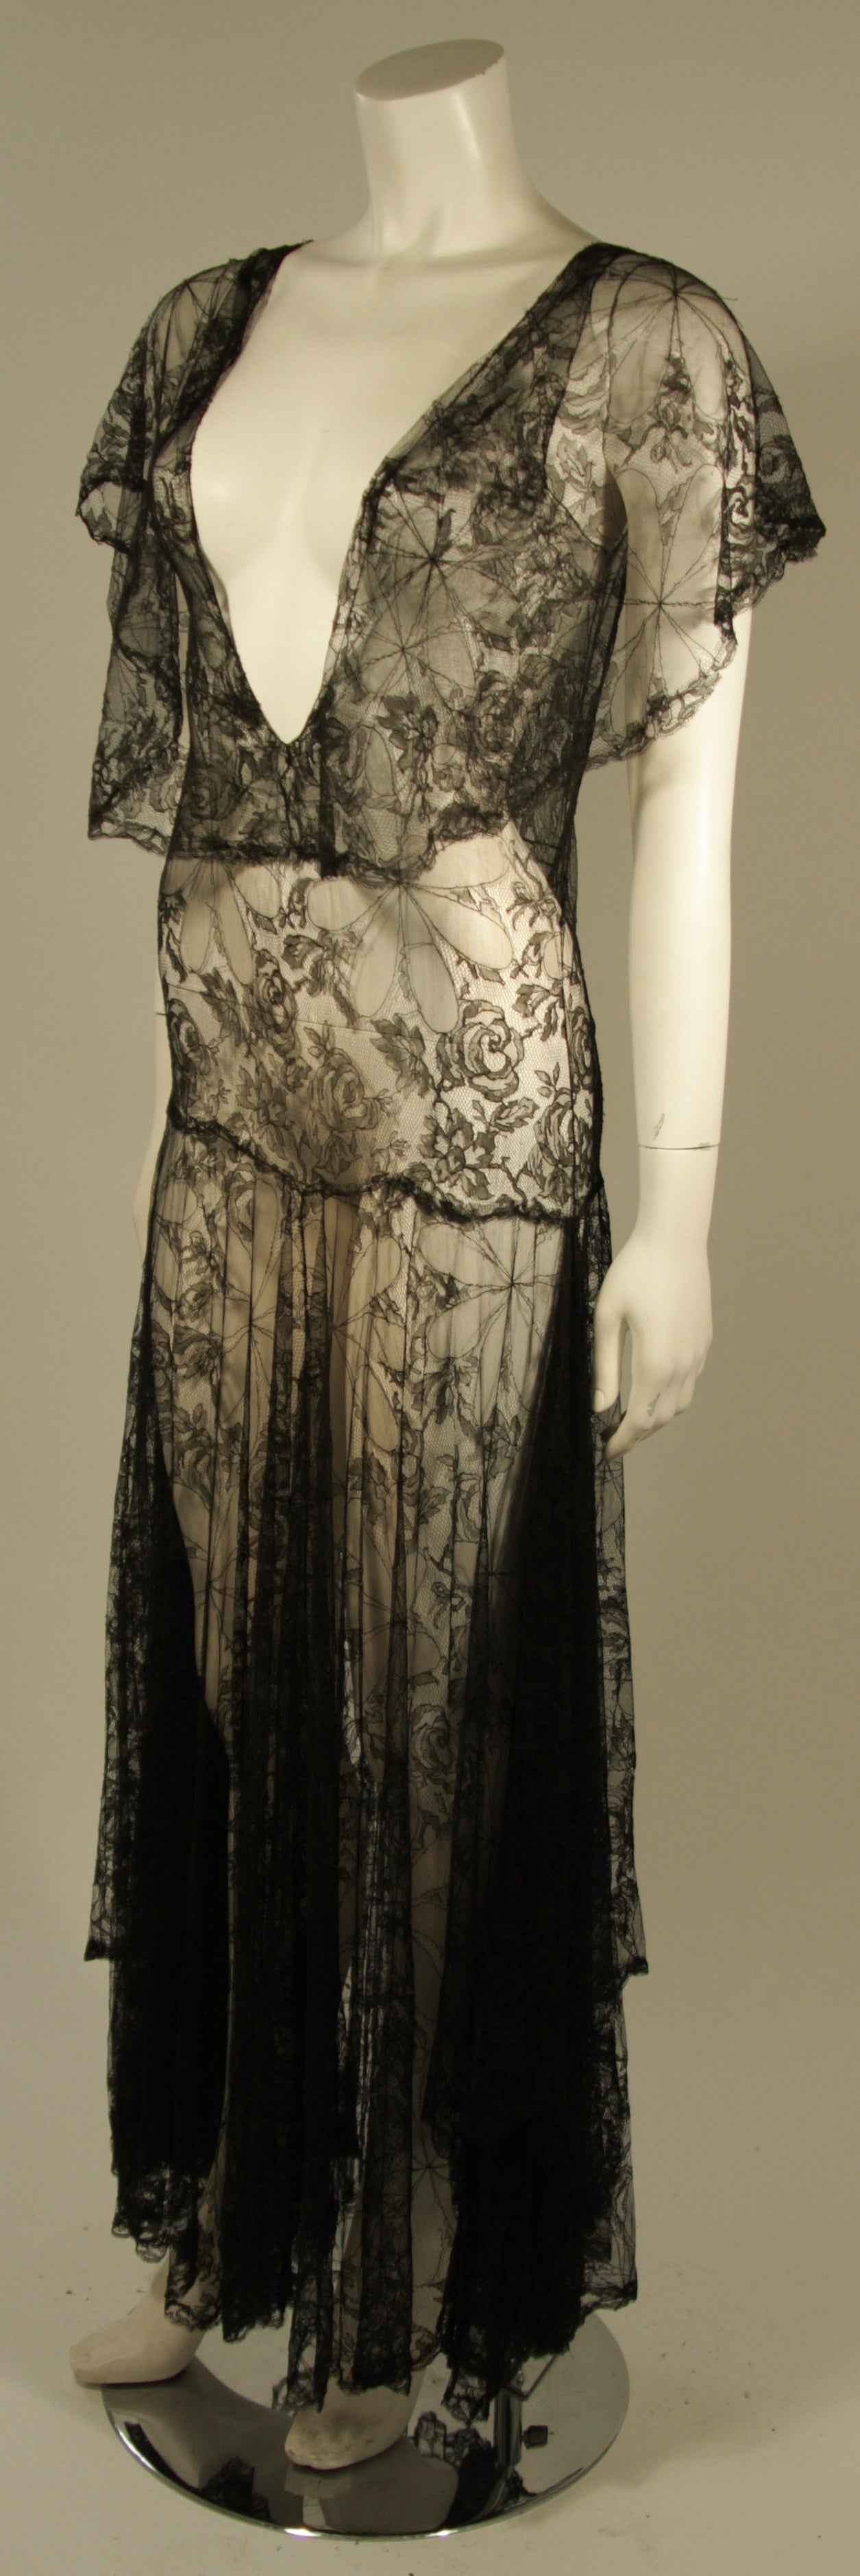 1930's Black French Lace Gown 3